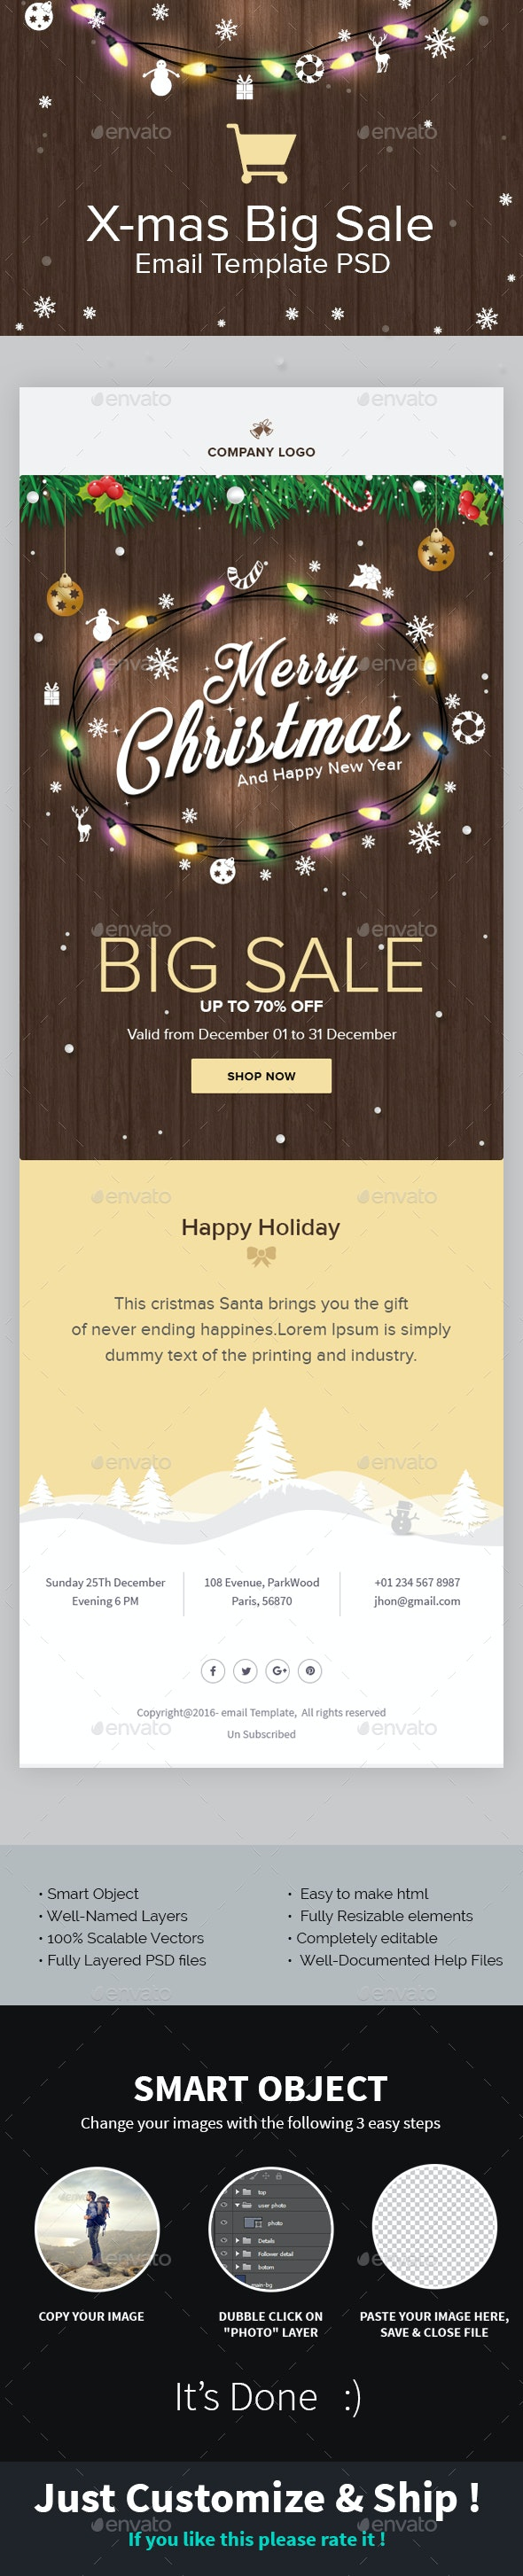 X-mas Offer - Christmas Shopping Offer Email Template PSD - E-newsletters Web Elements